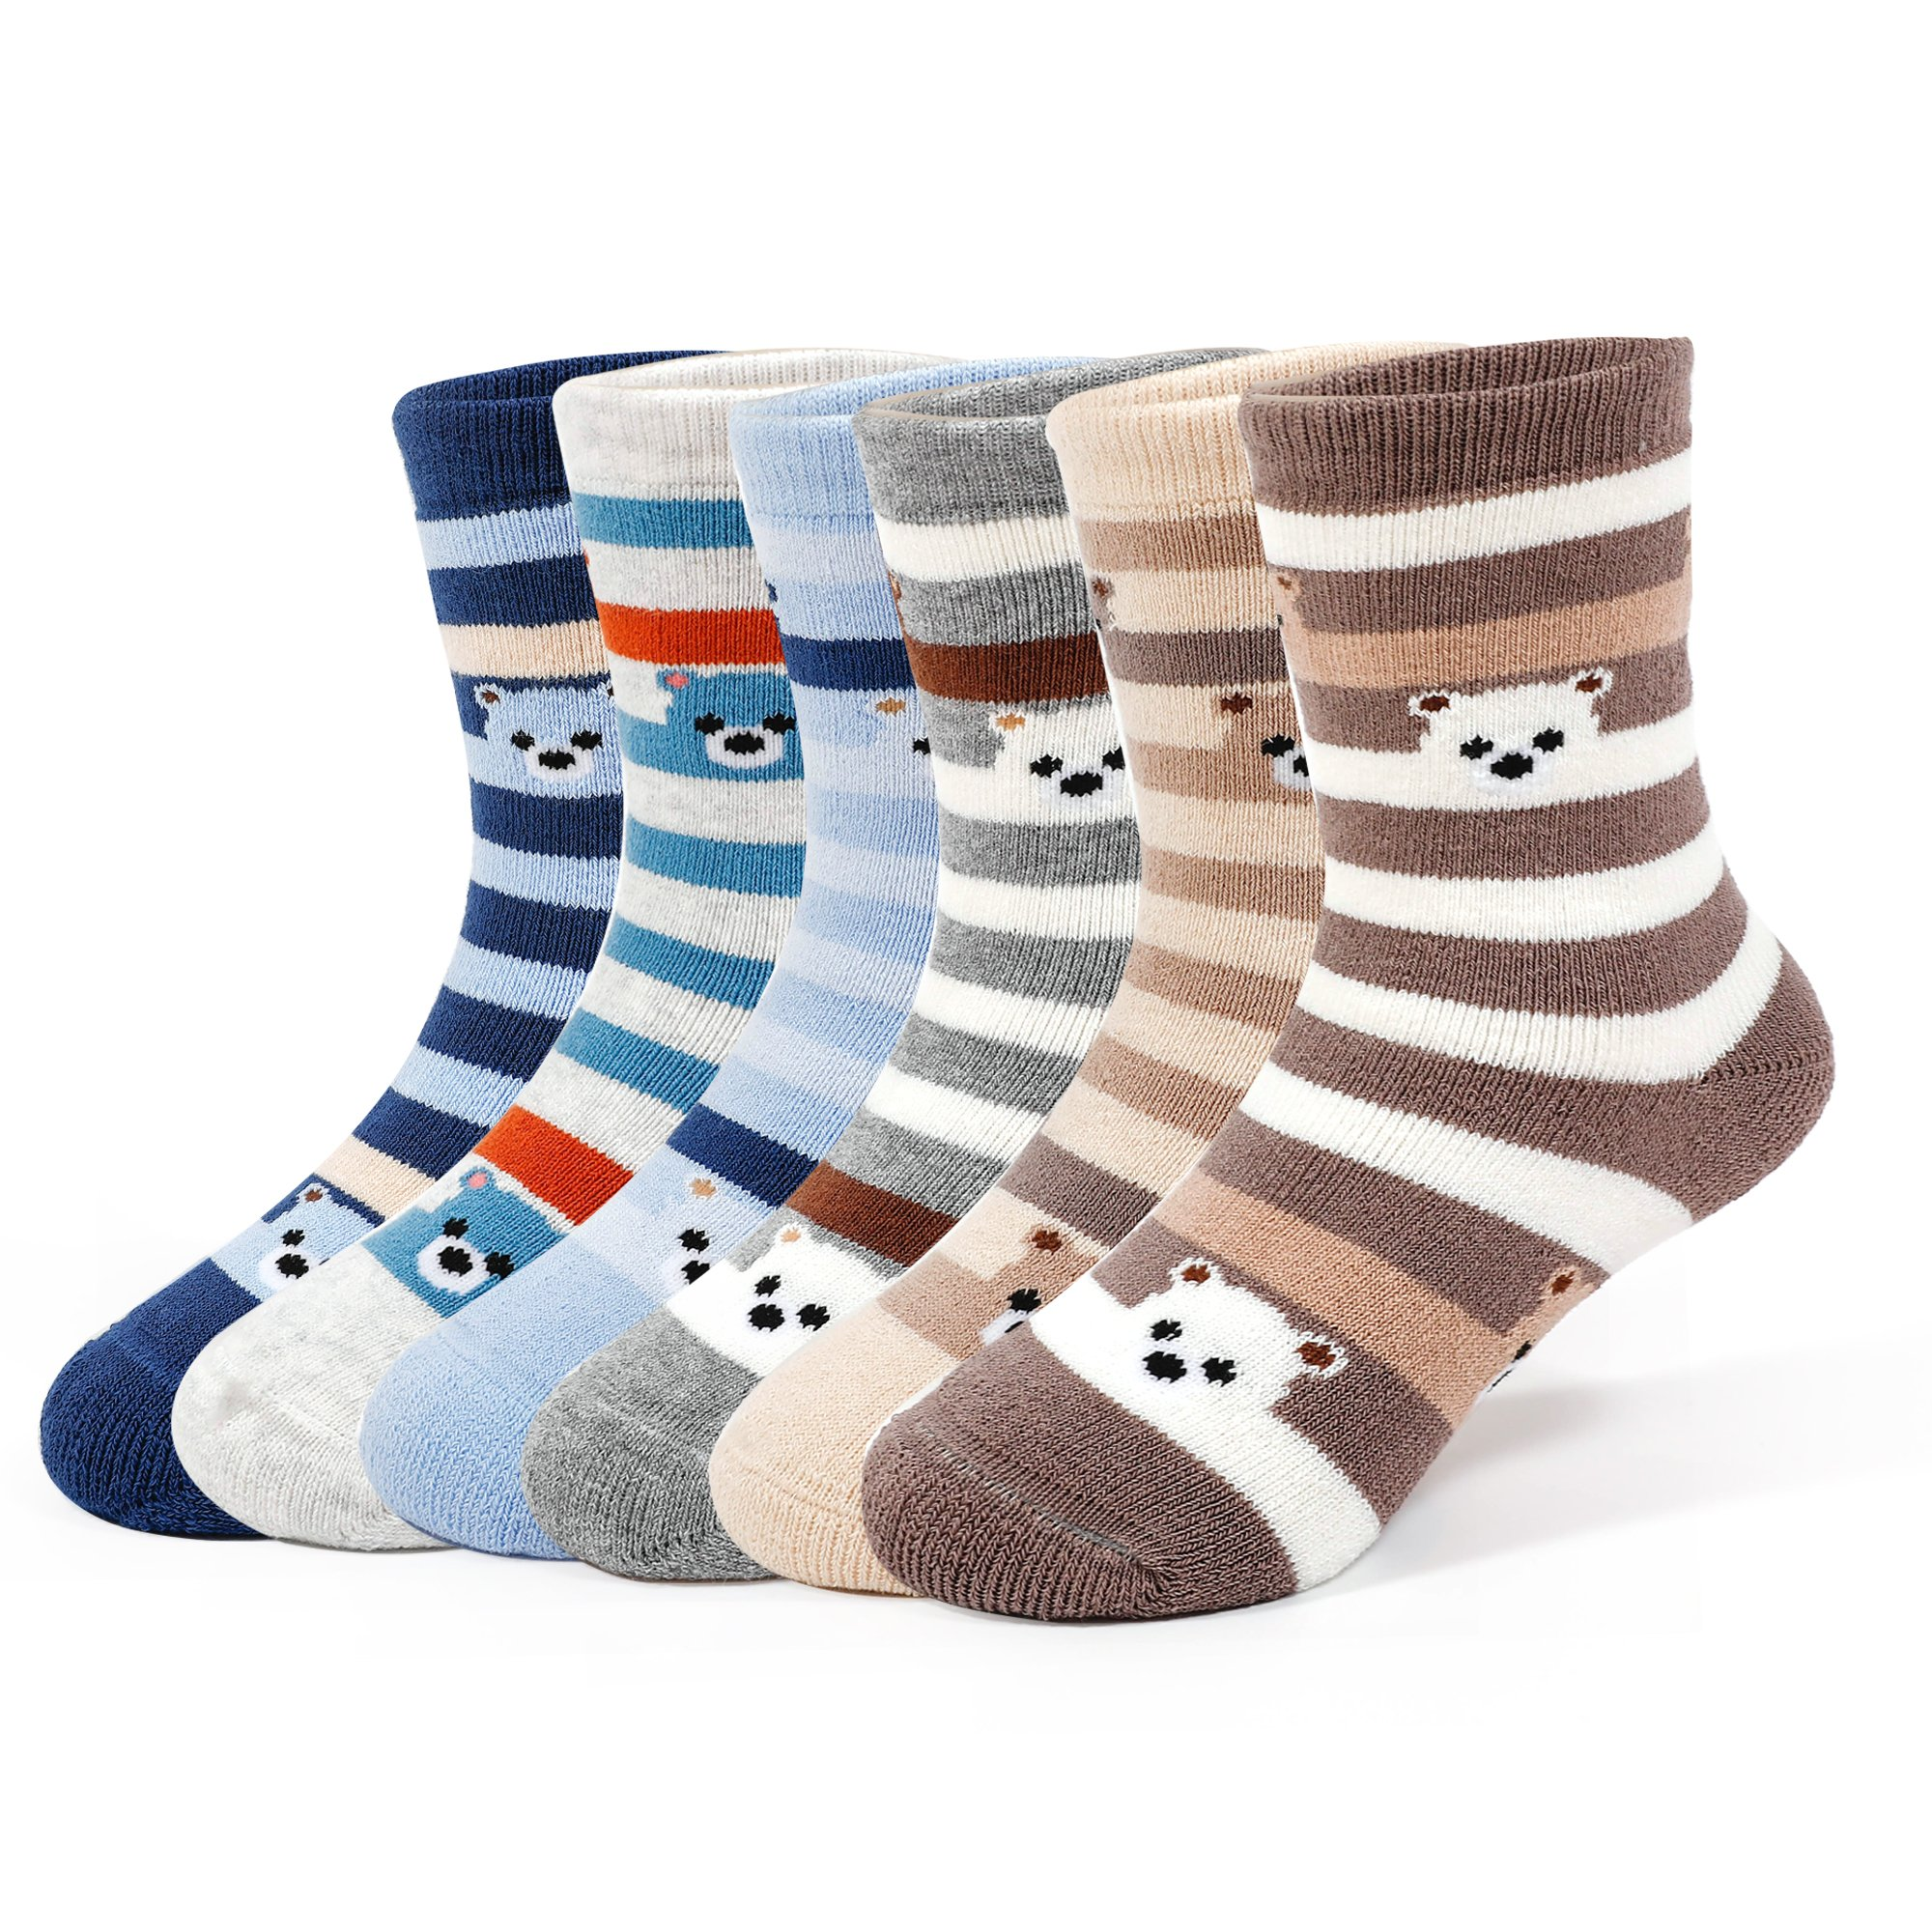 Boys Winter Thick Cotton Socks Kids Warm Seamless Socks 6 Pack For 8T/9T/10T